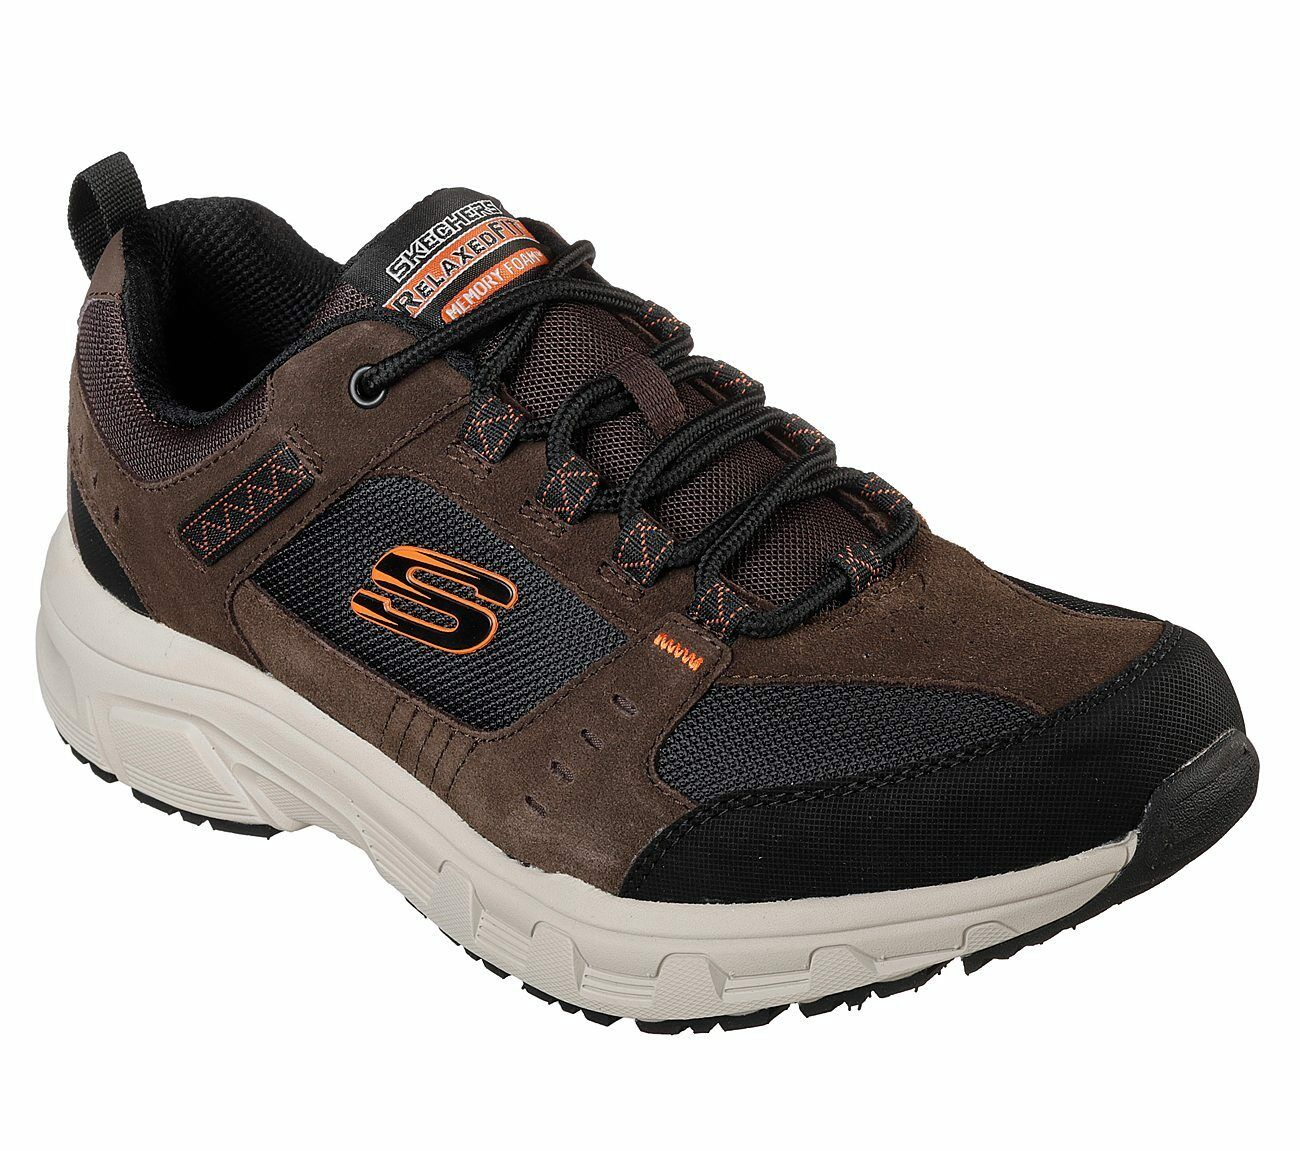 Skechers Relaxed Fit: Oak Canyon Trainers   Trainers Herren Memory Foam Walking Schuhes 51893 a89f3f